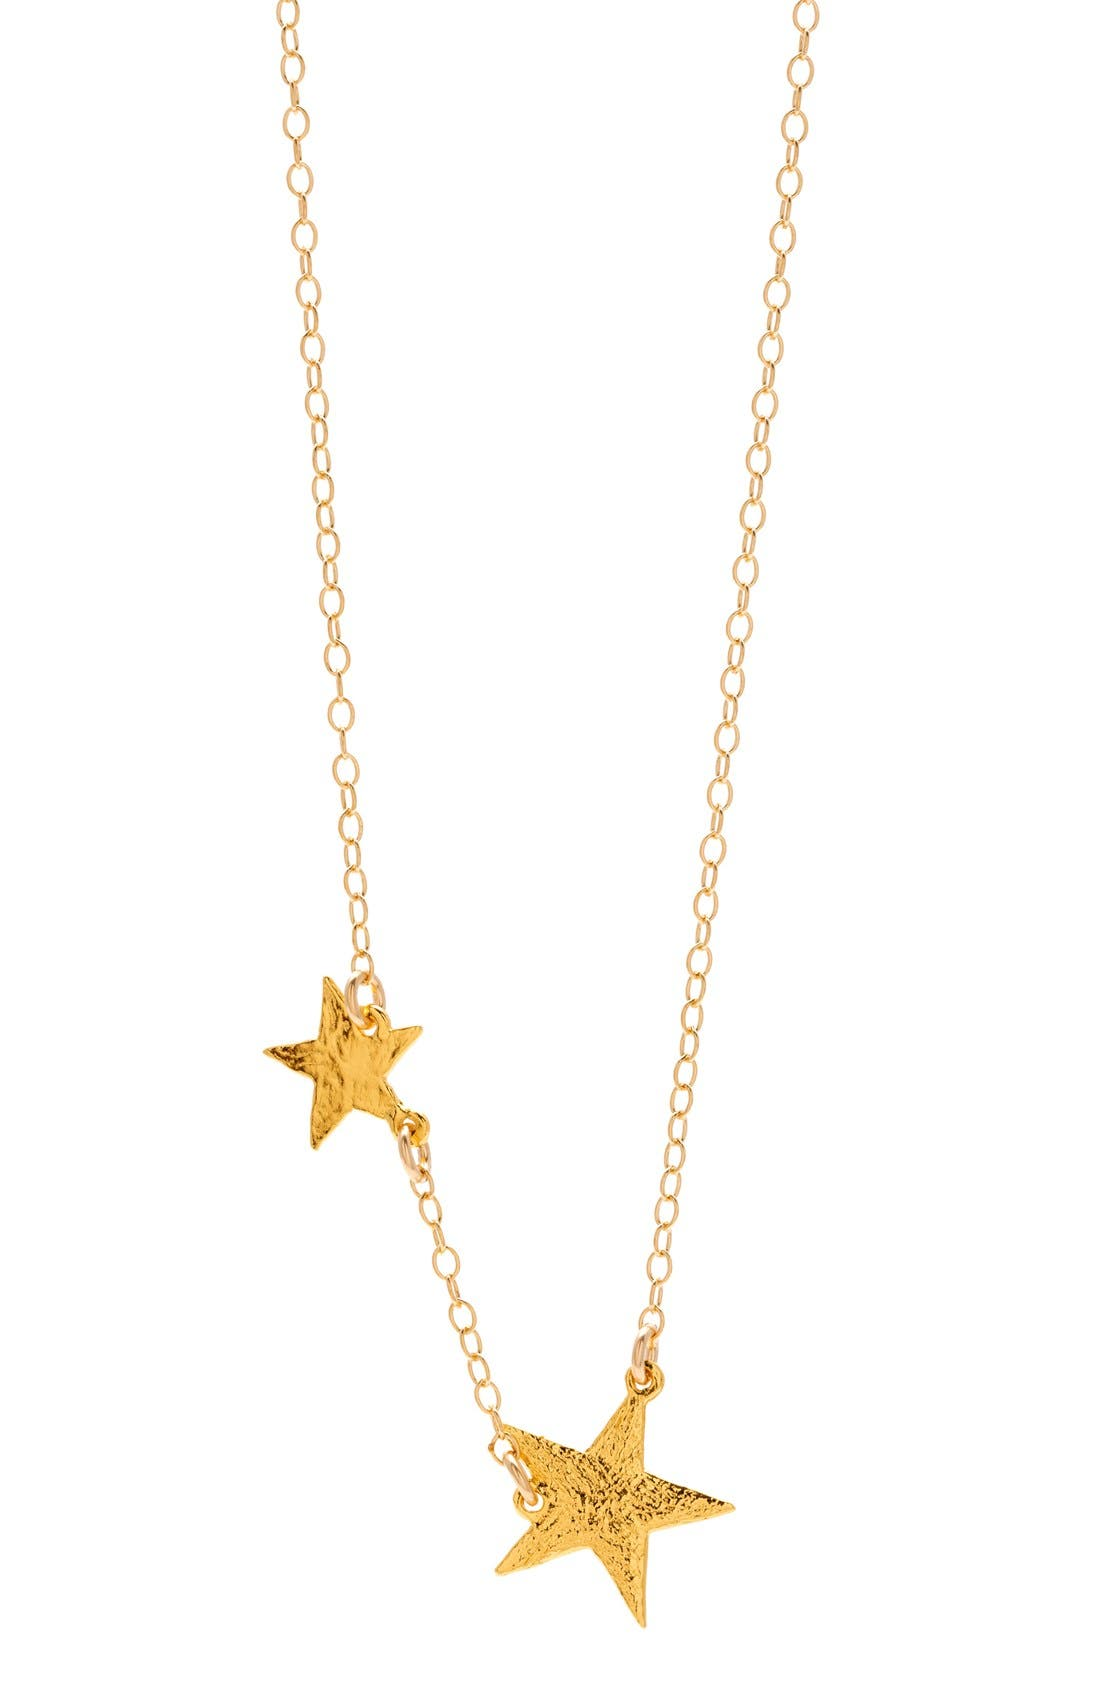 Star Pendant Necklace,                         Main,                         color, Gold